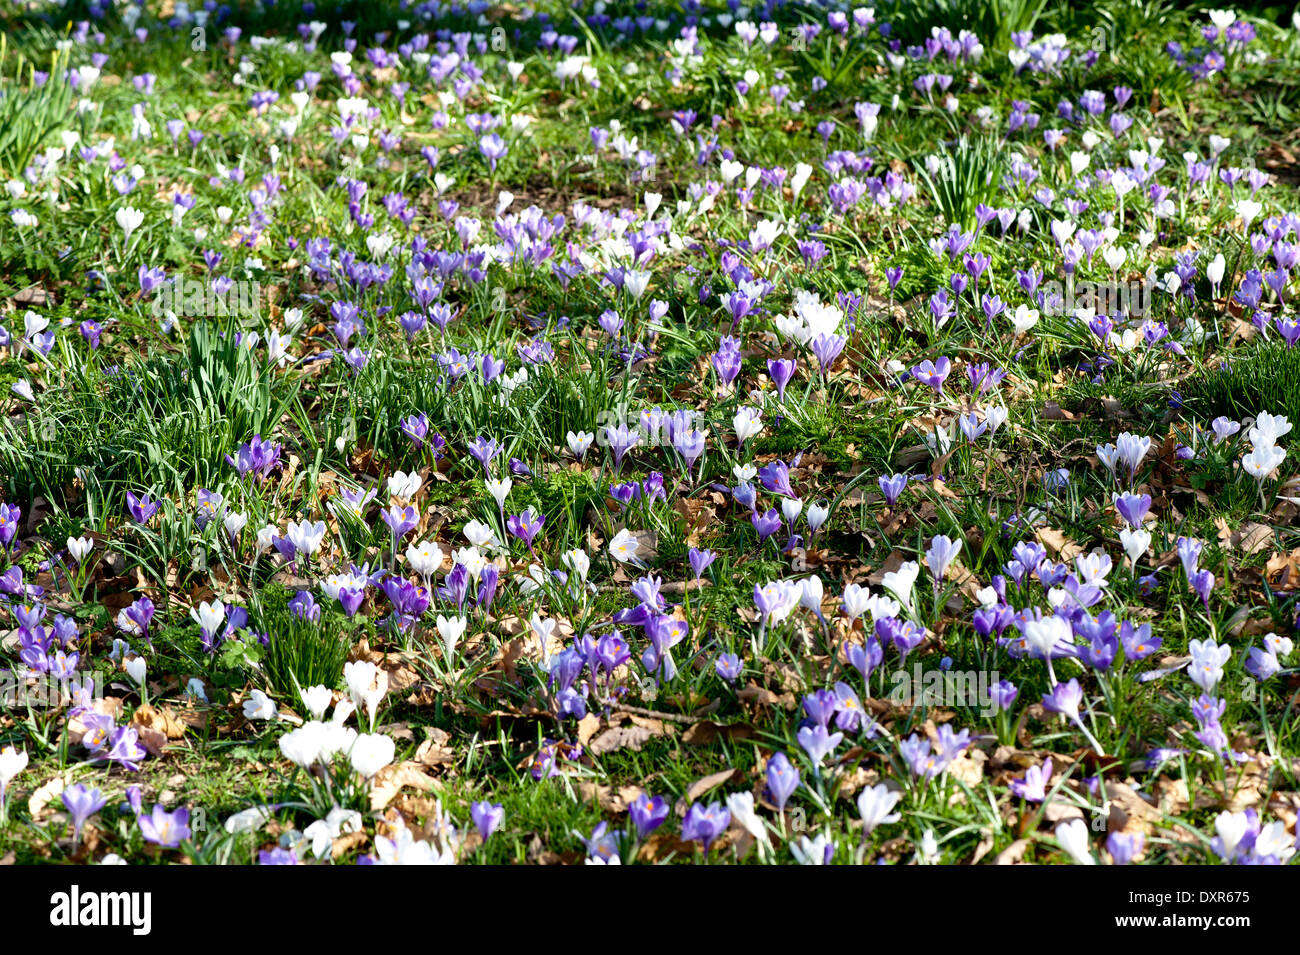 Purple And White Crocus Flowers Lawn Stock Photo 68121961 Alamy